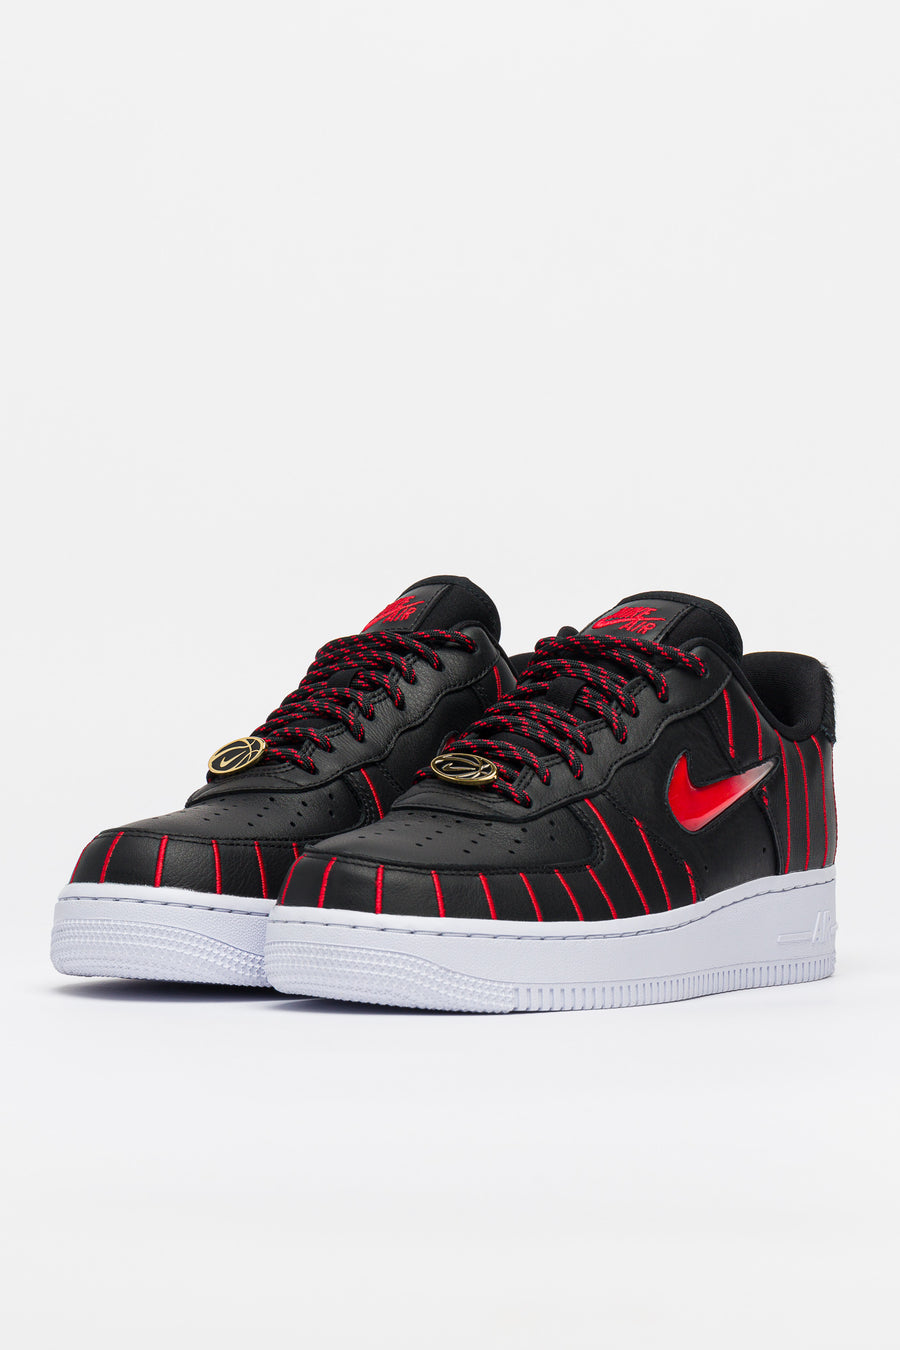 W Air Force 1 Jewel Qs In Black Red White